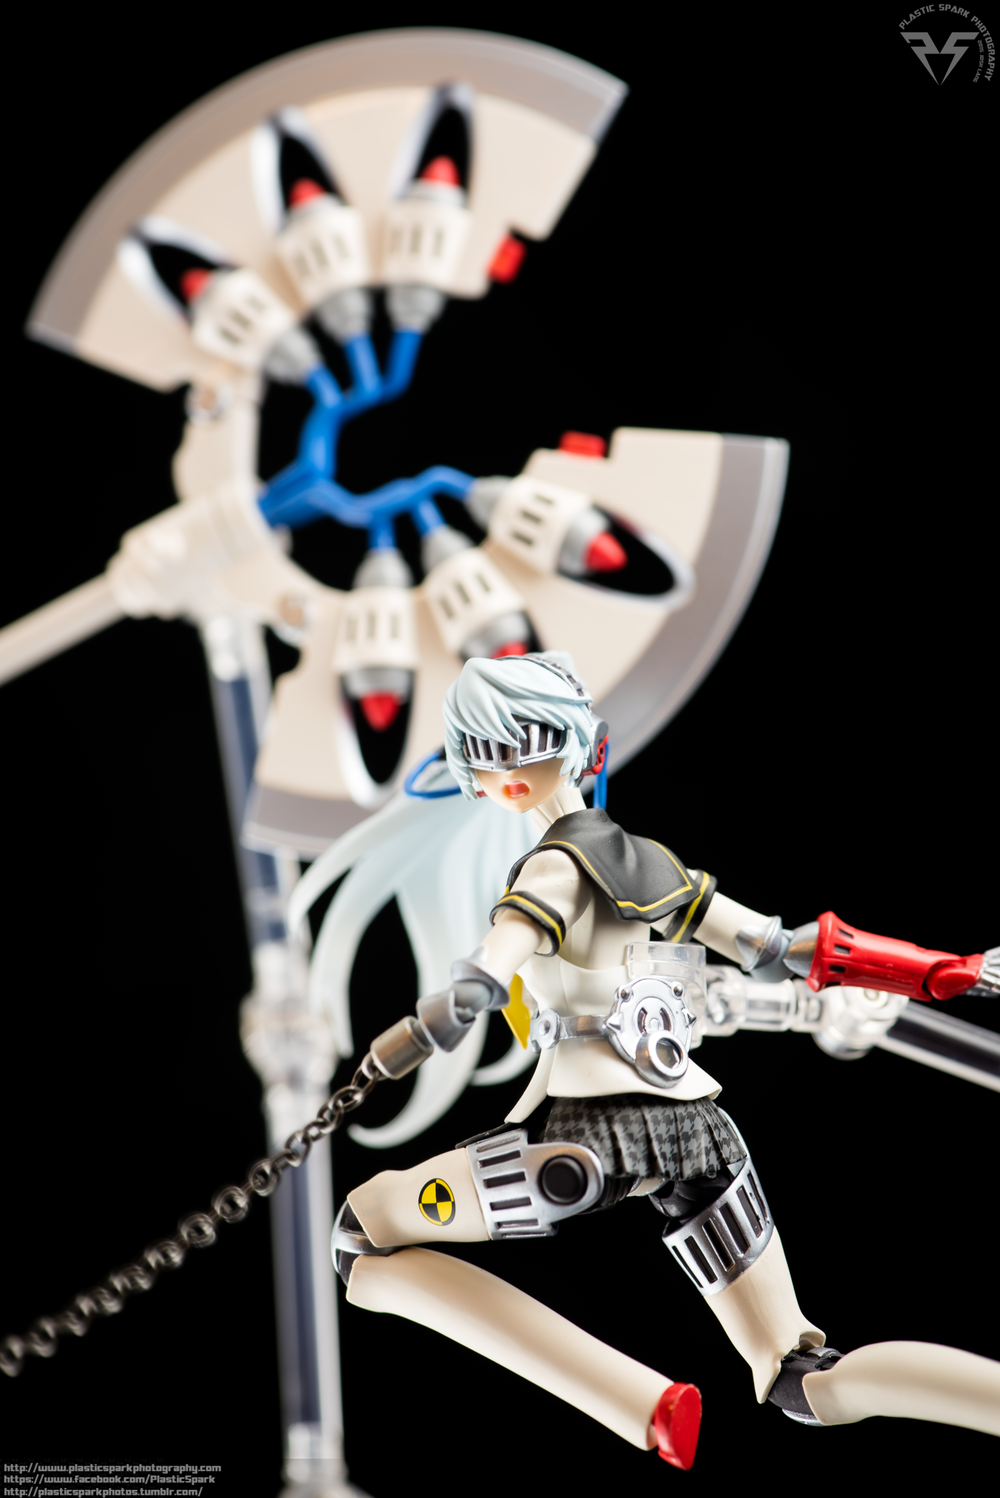 Figma-Labrys-(14-of-33).png